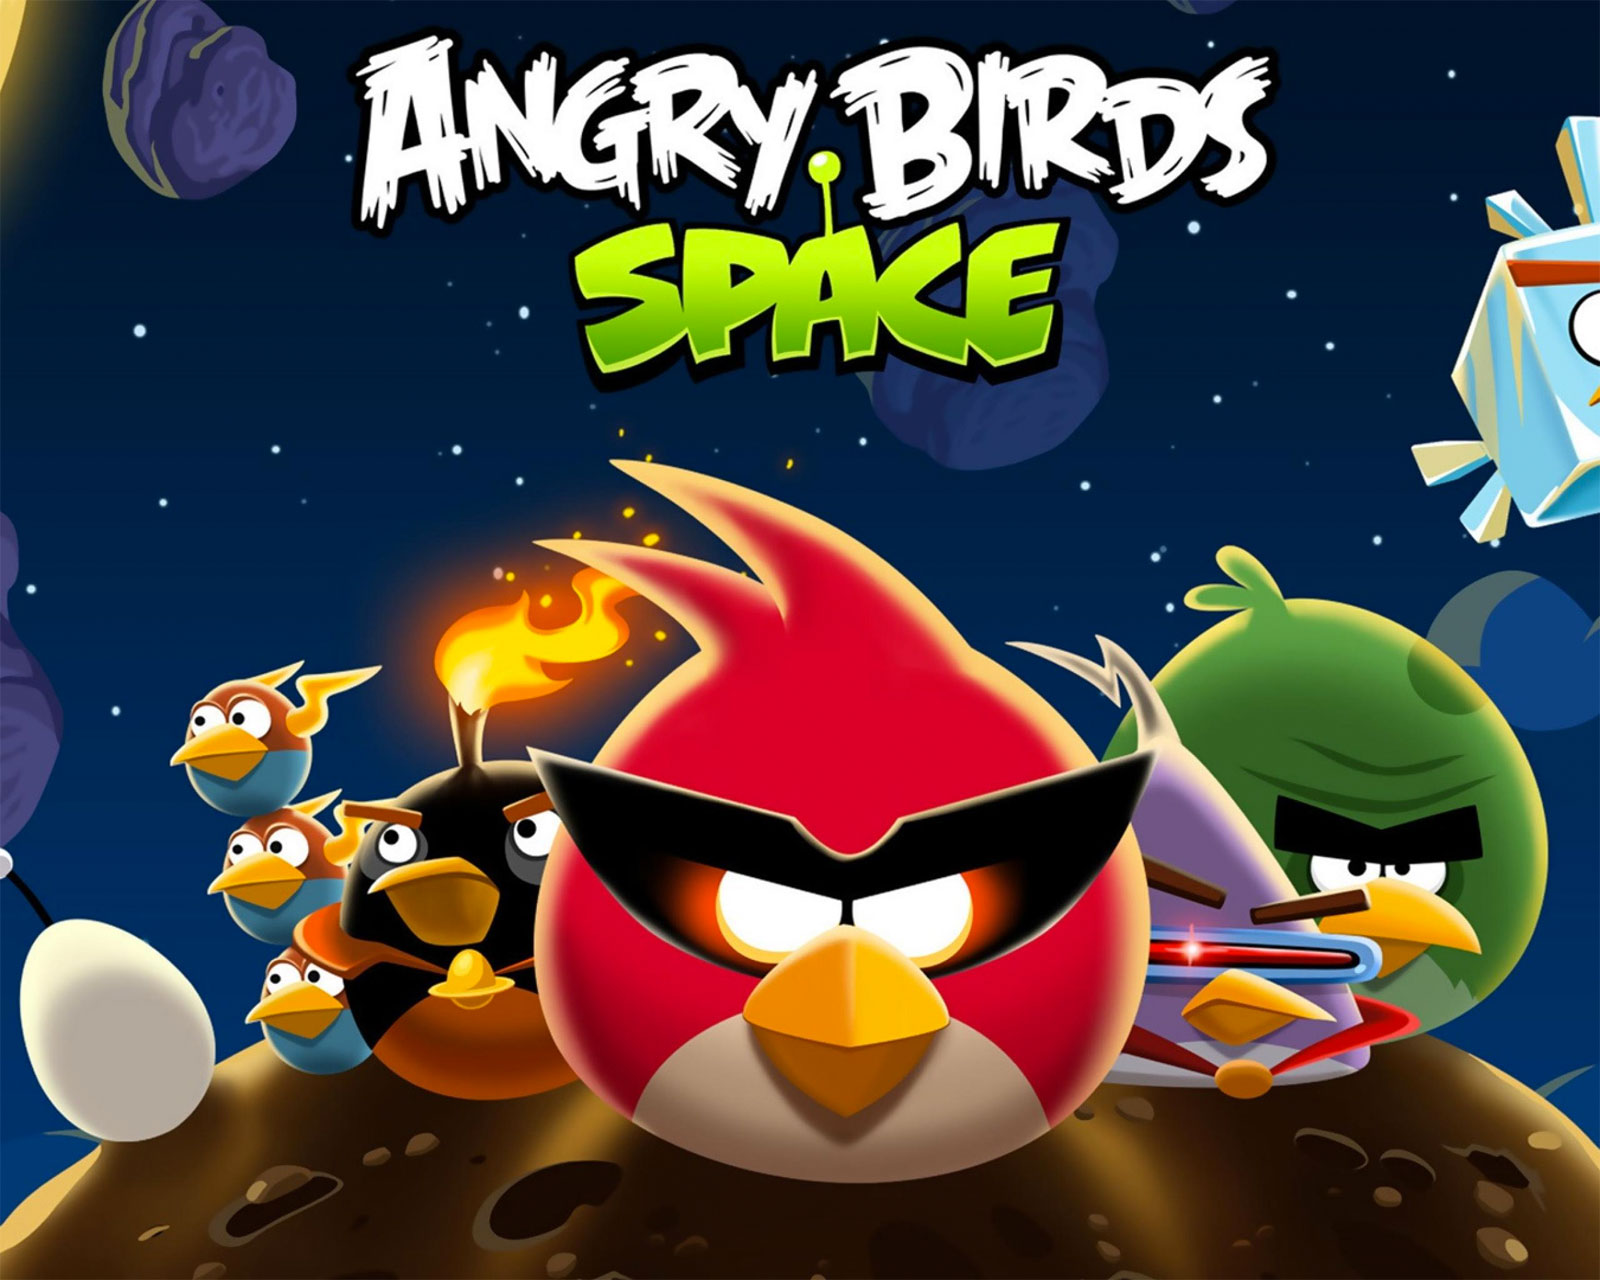 iphoneros.com - iPhoneros - Andy Birds Space para iPhone y iPad disponible gratis hoy